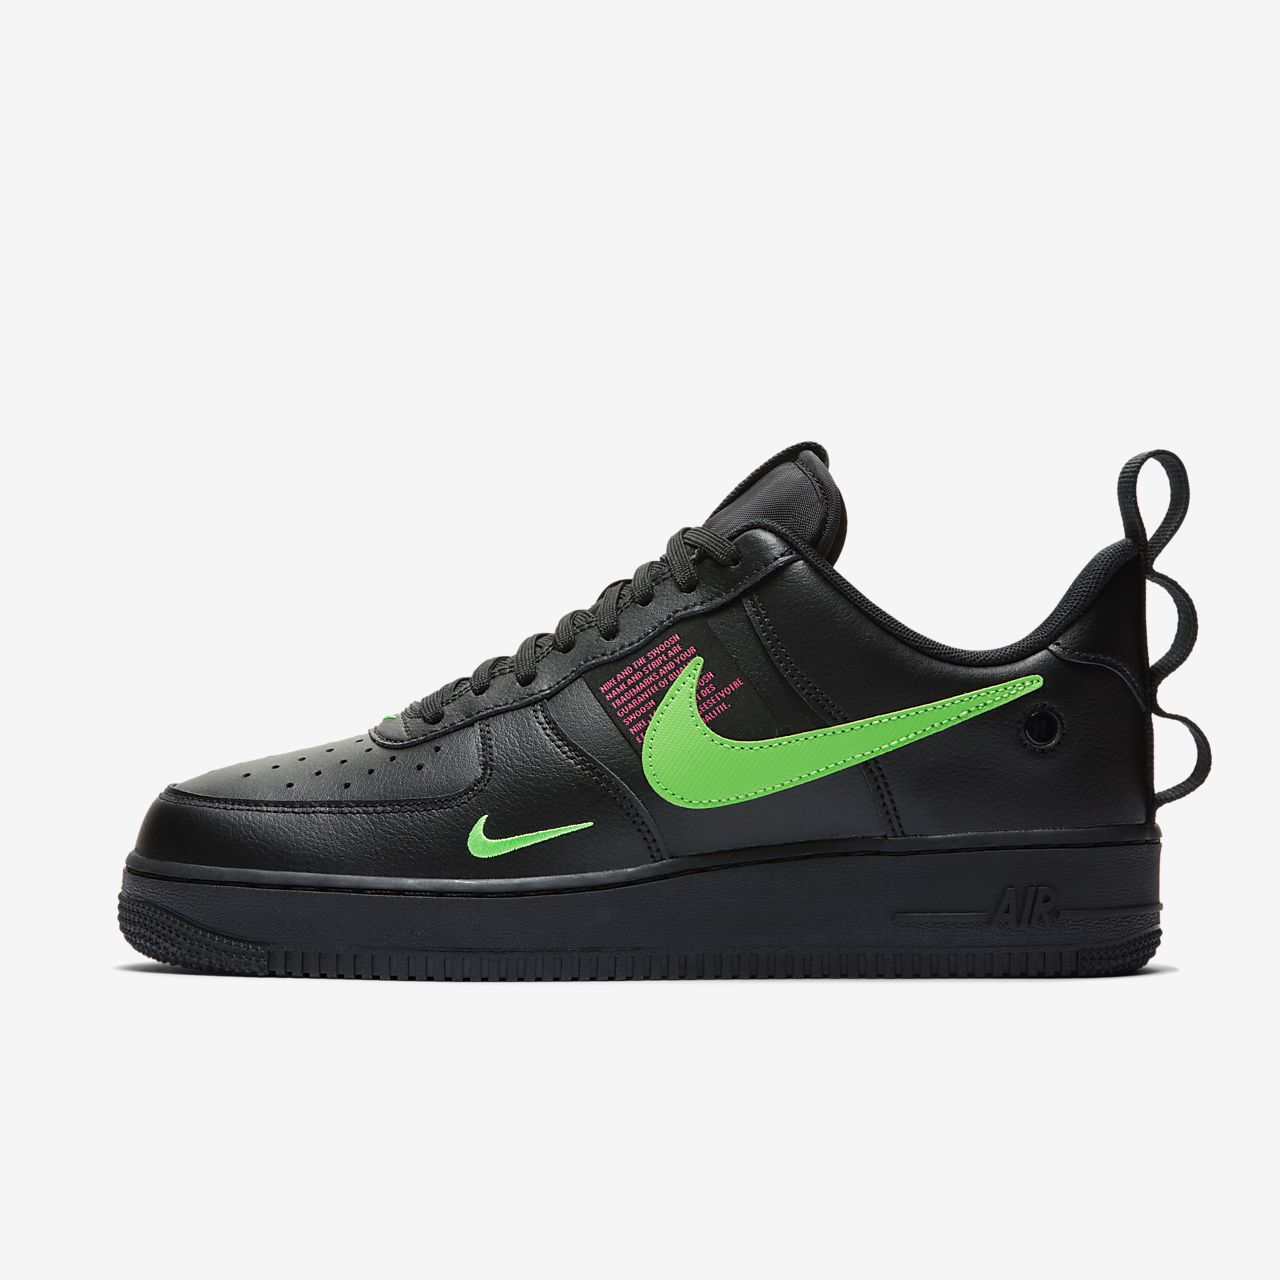 9beb5b8910 Nike Air Force 1 LV8 UL Men's Shoe